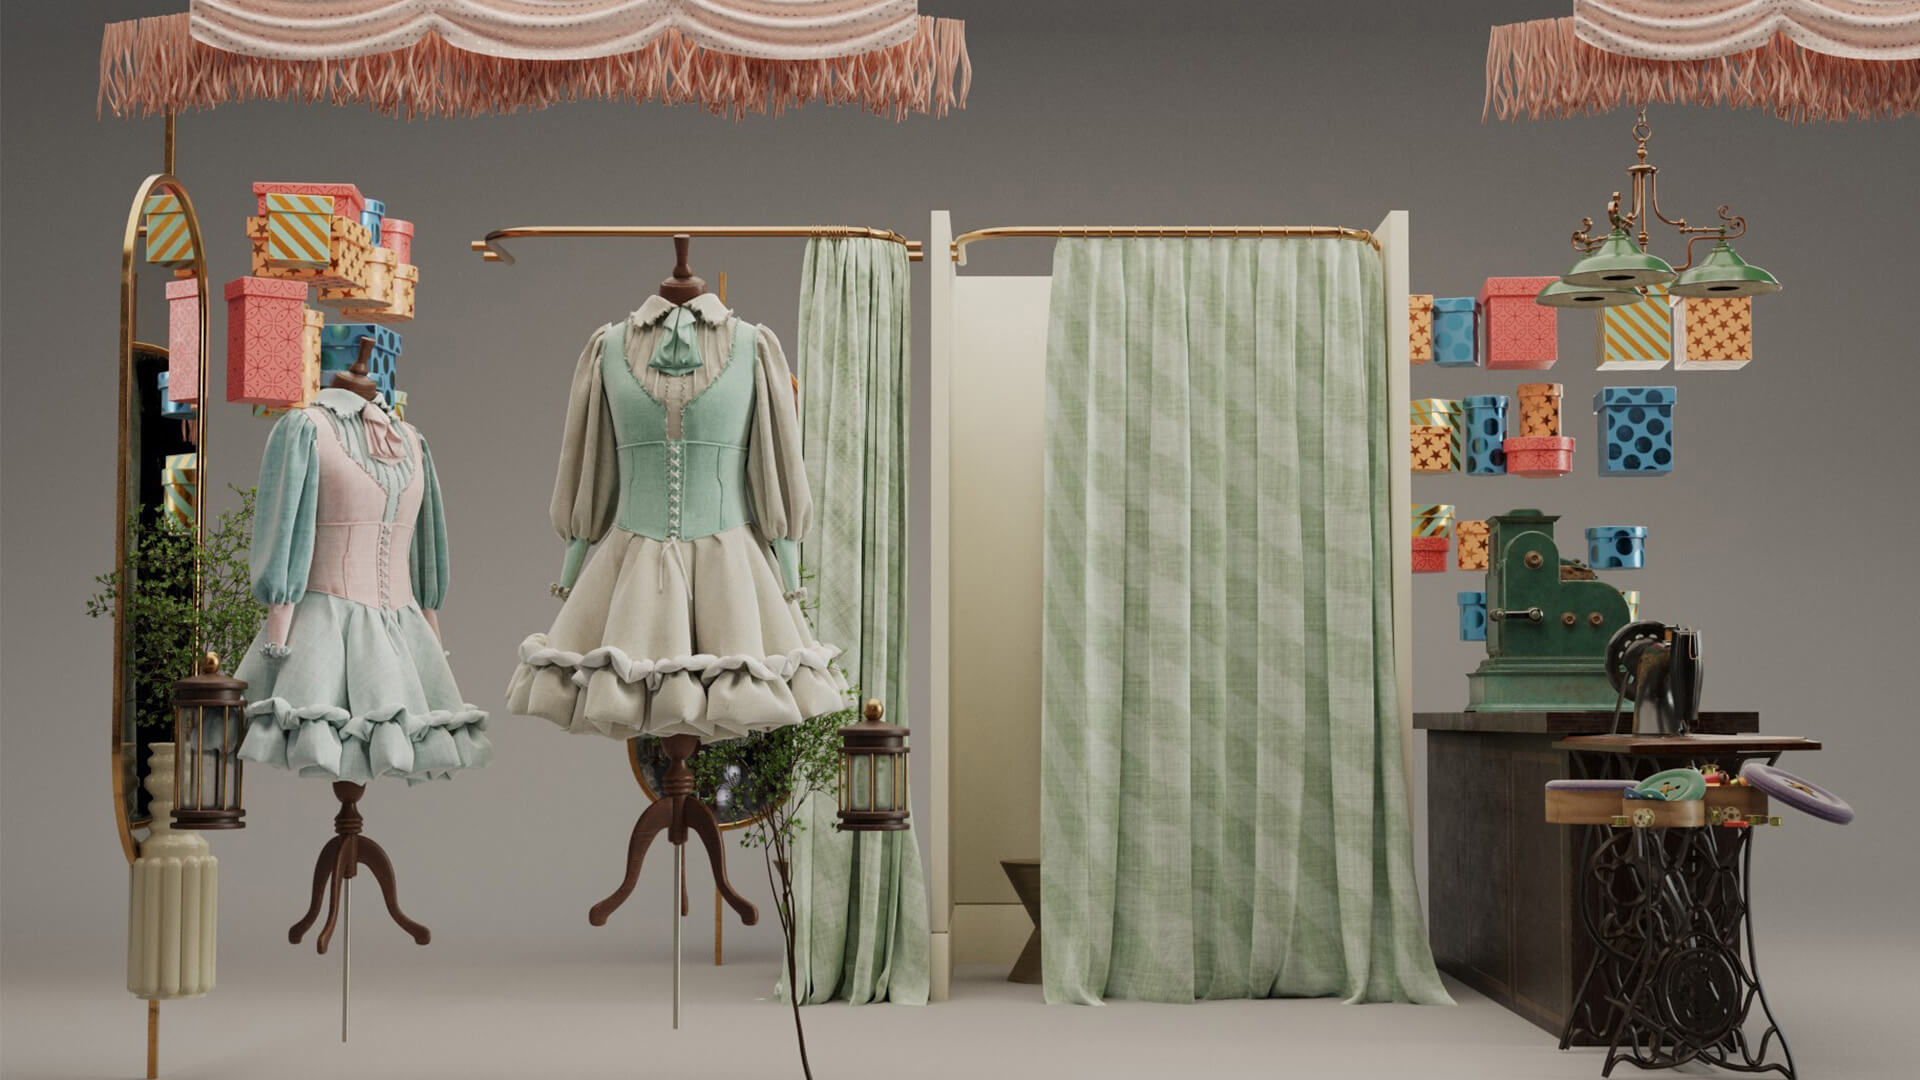 roofstudio_curaviva_objects_store_05